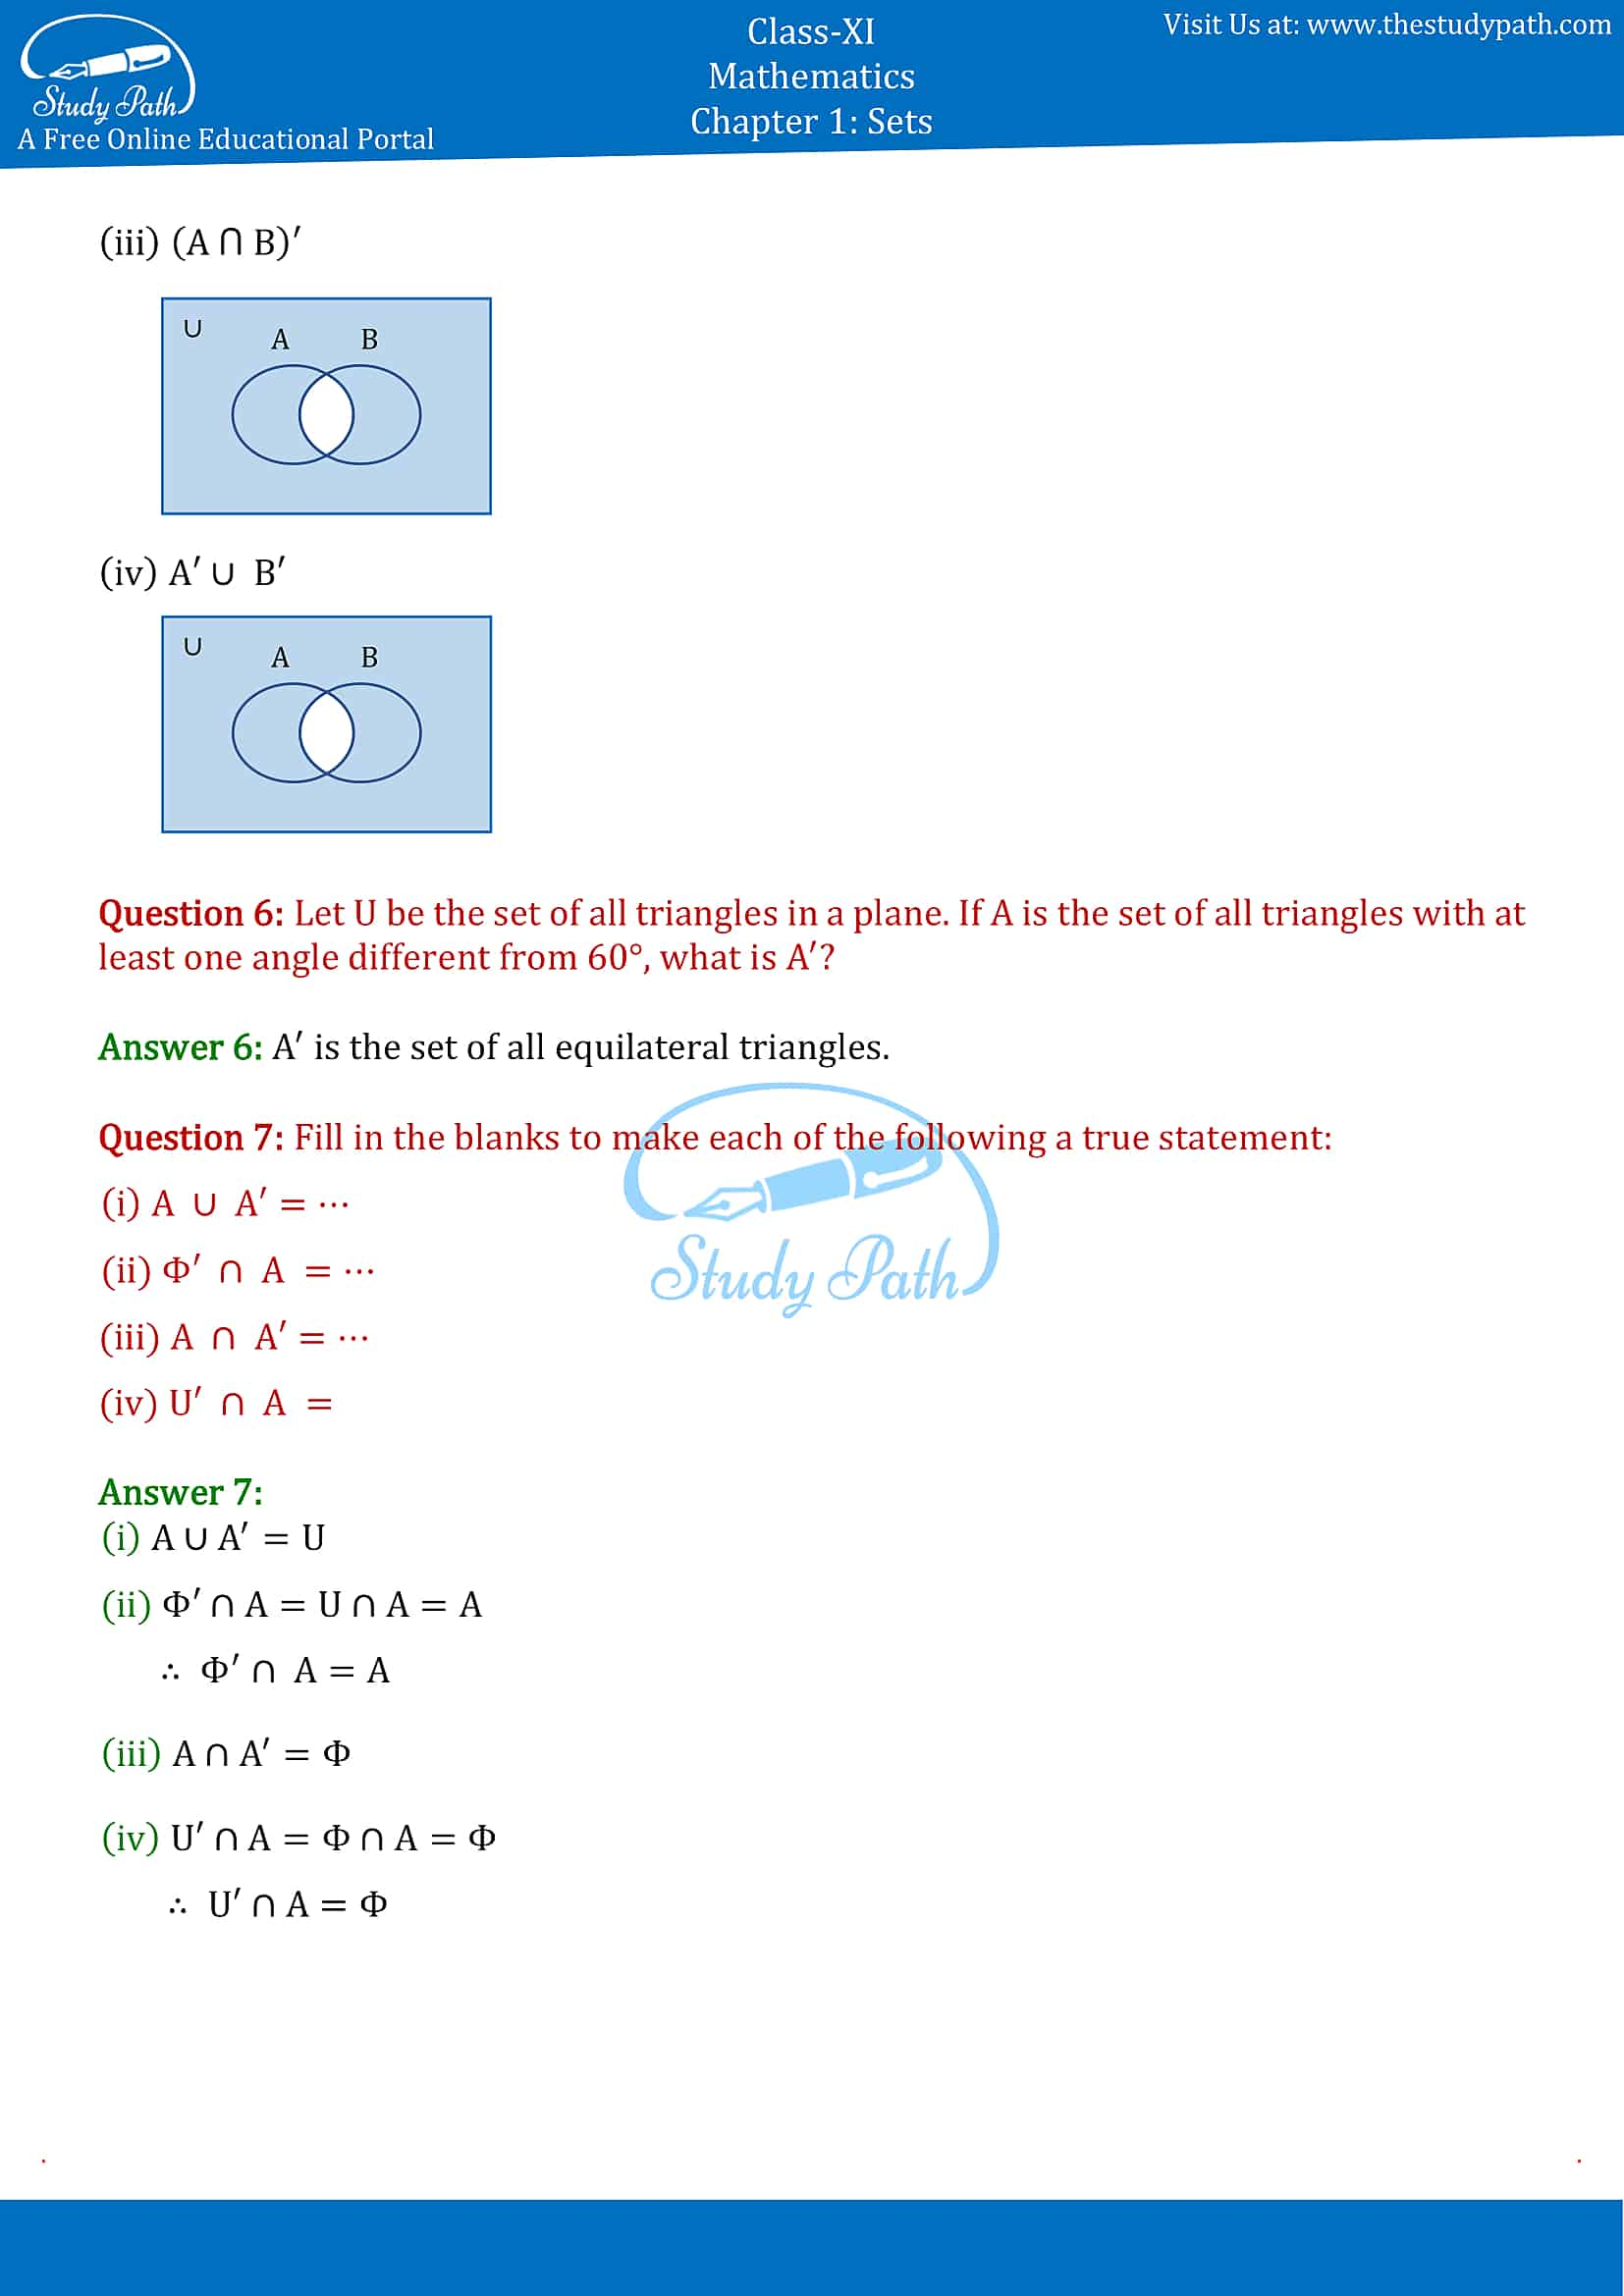 NCERT Solutions for Class 11 Maths chapter 1 sets Exercise 1.5